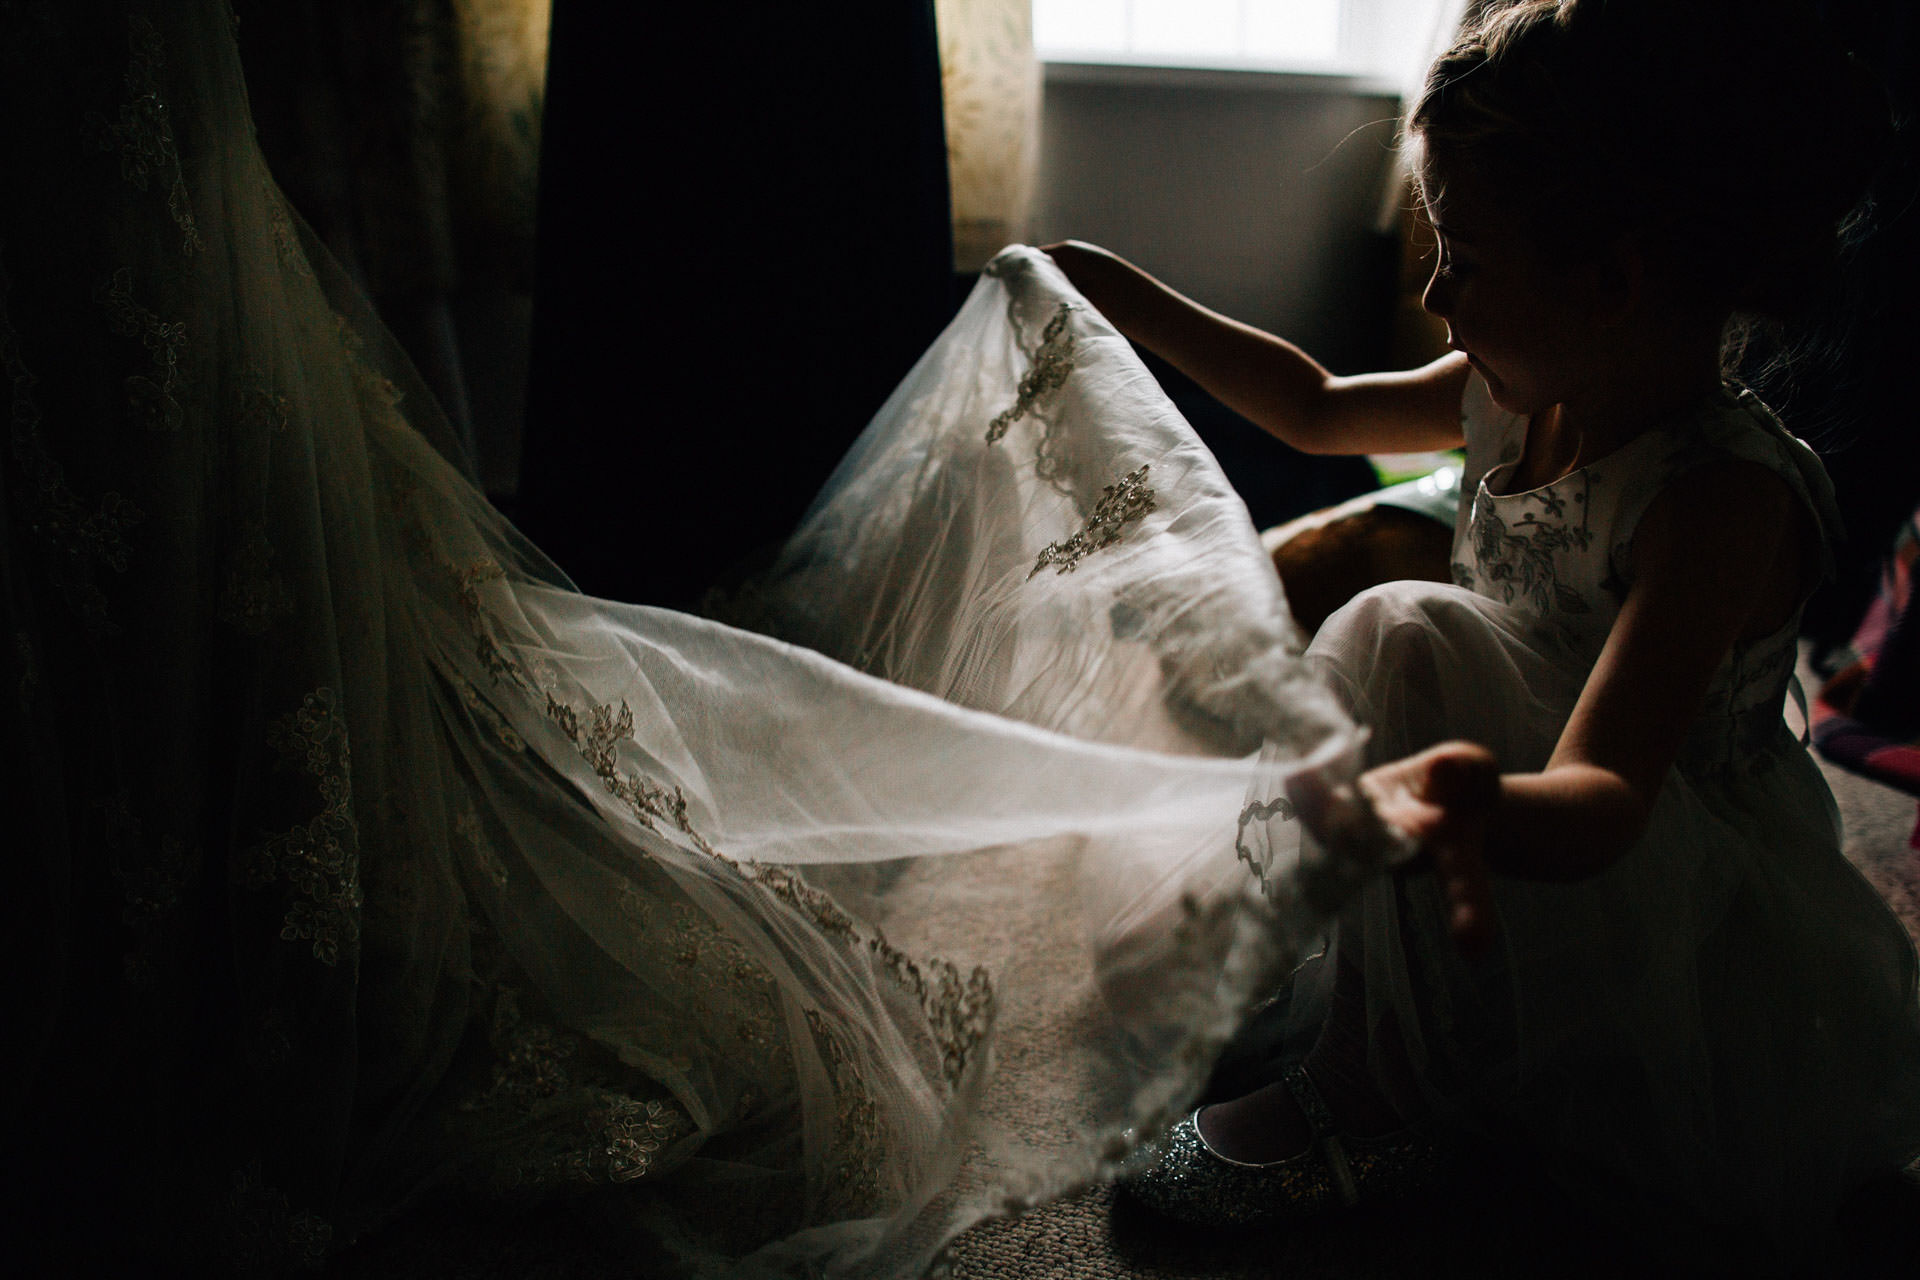 Best wedding photography 2016 - bridesmaid playing with veil